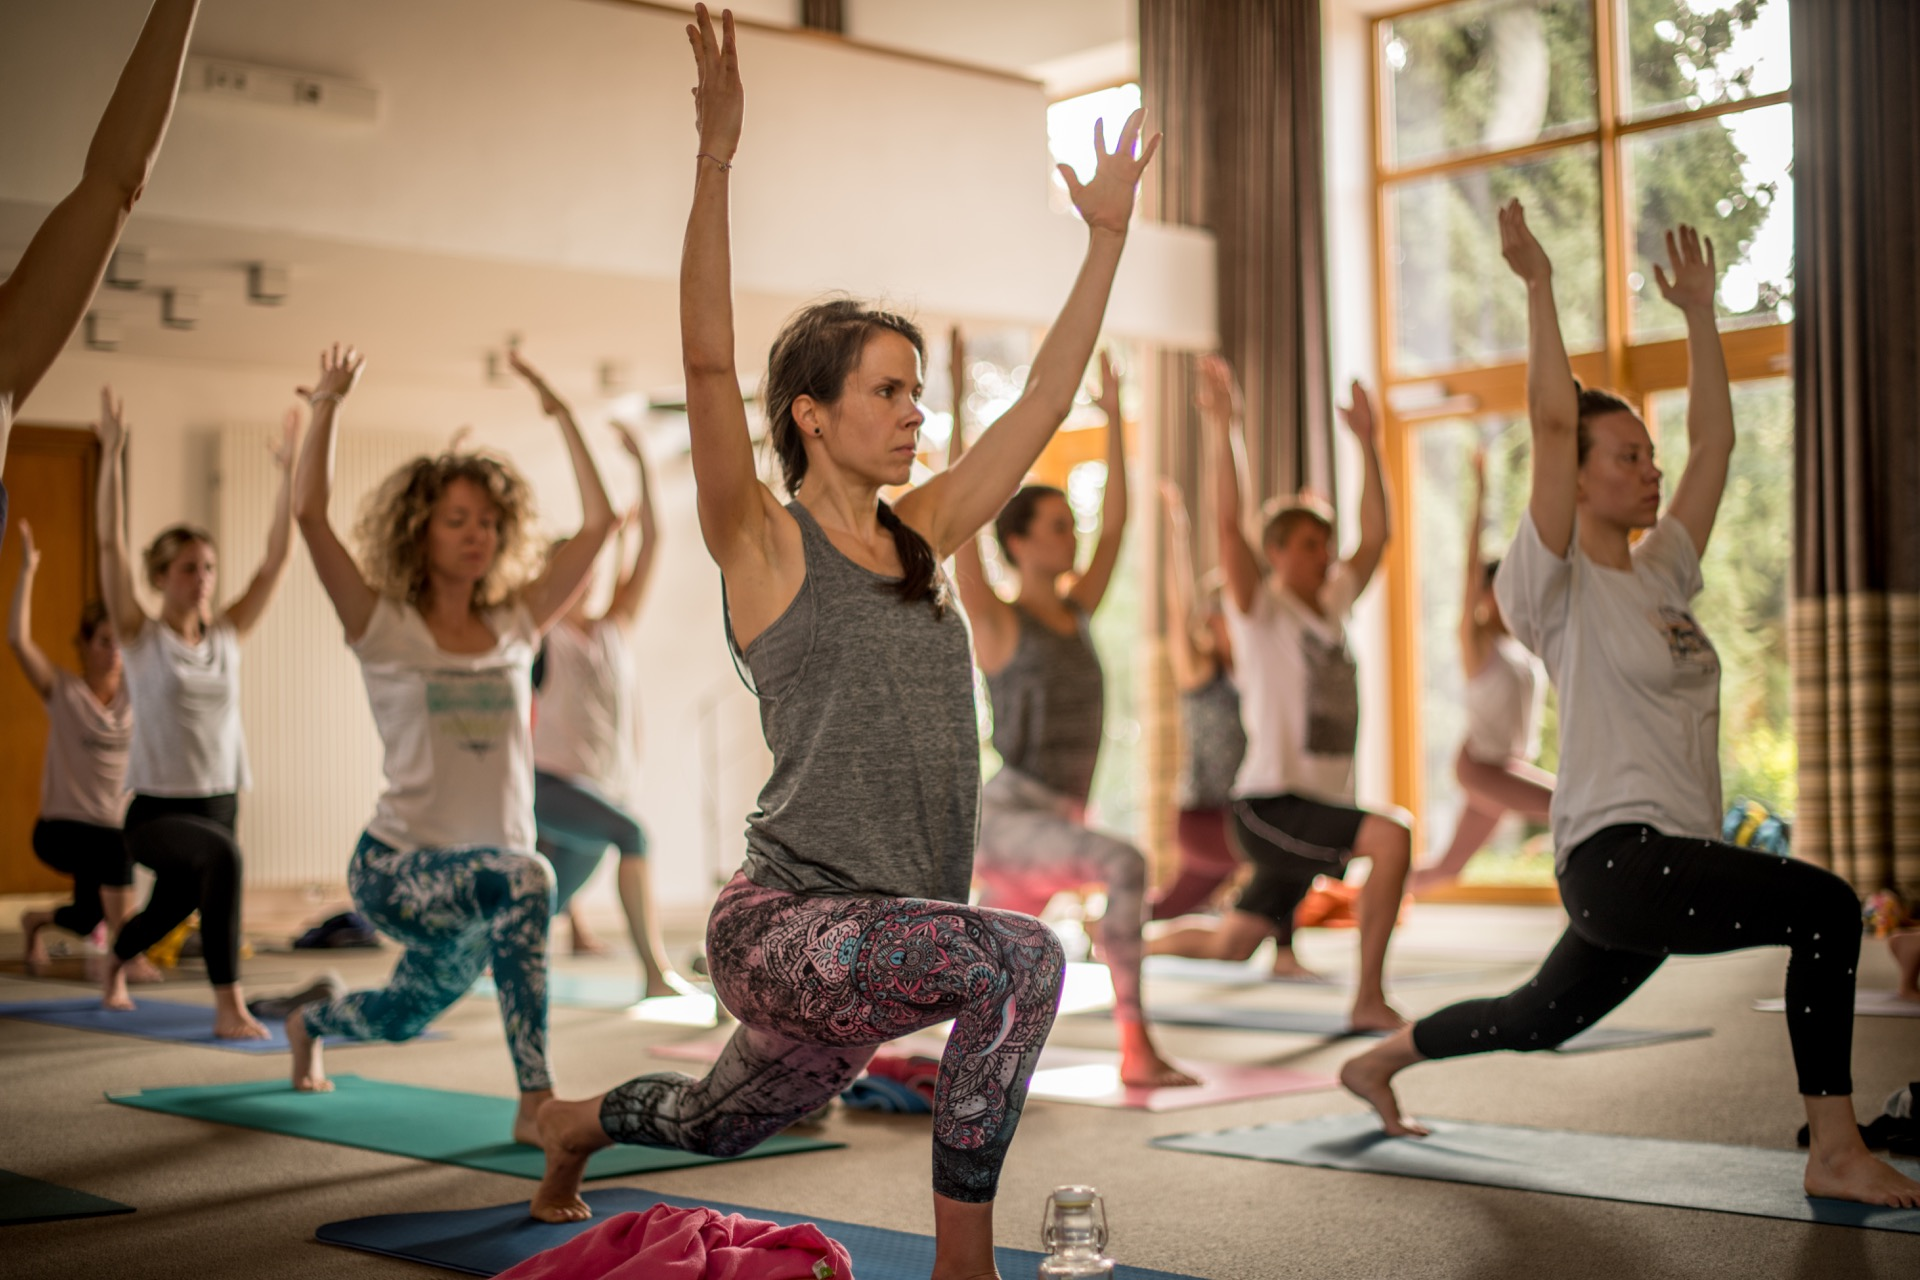 Hie-Kim-Friends-2019-Yoga-Retreat-Alina-Matis-Photography-081 - Hie Kim Yoga - Yoga Retreat - Yoga Workshops und Reisen